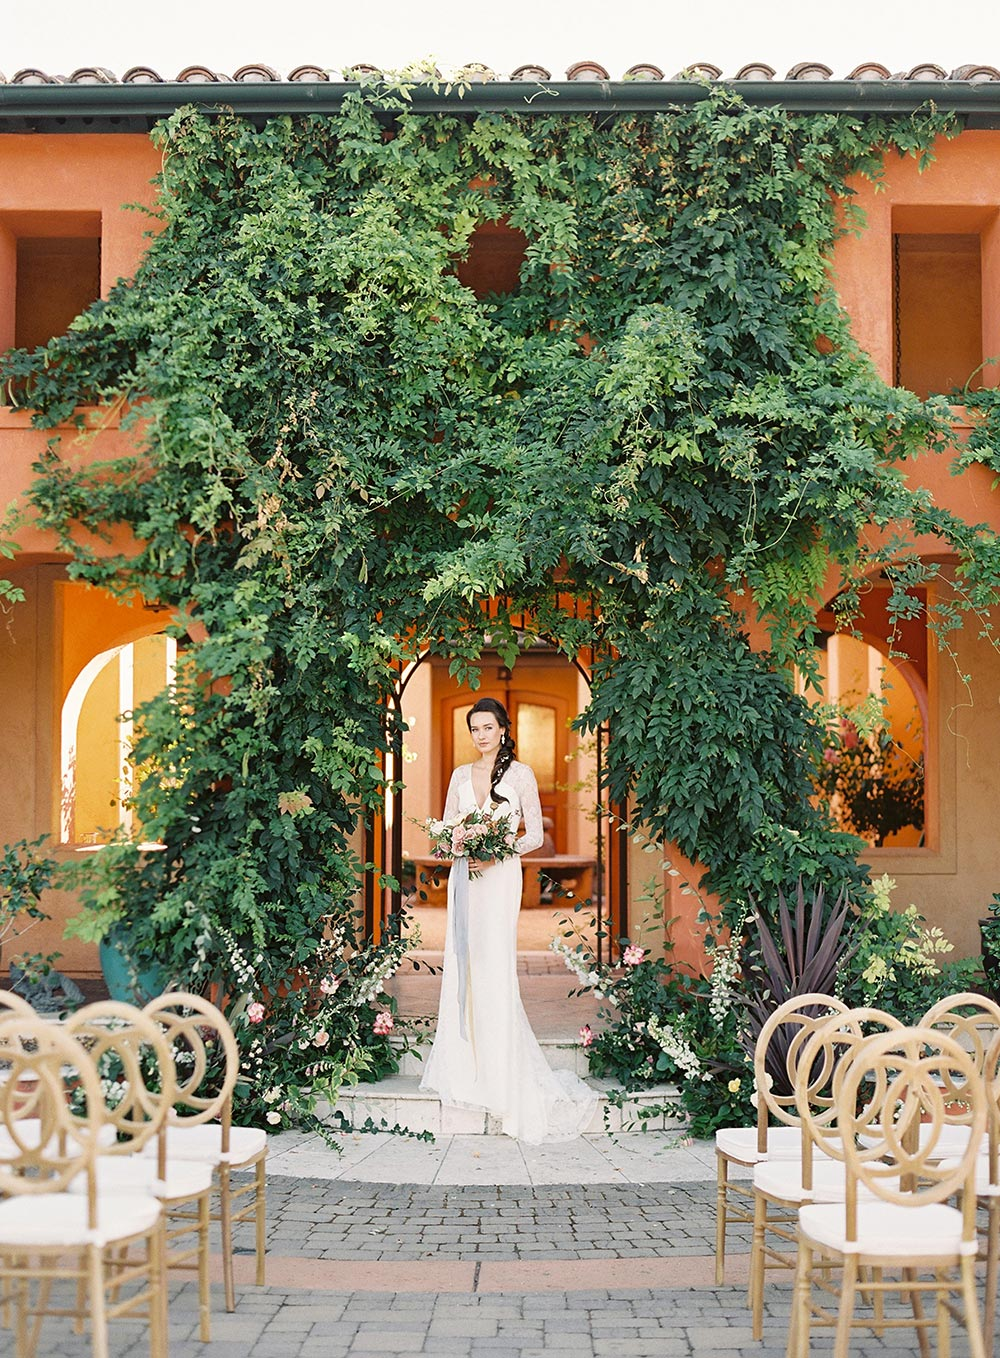 Tuscan villa wedding ceremony with natural wood chairs and long sleeve wedding dress